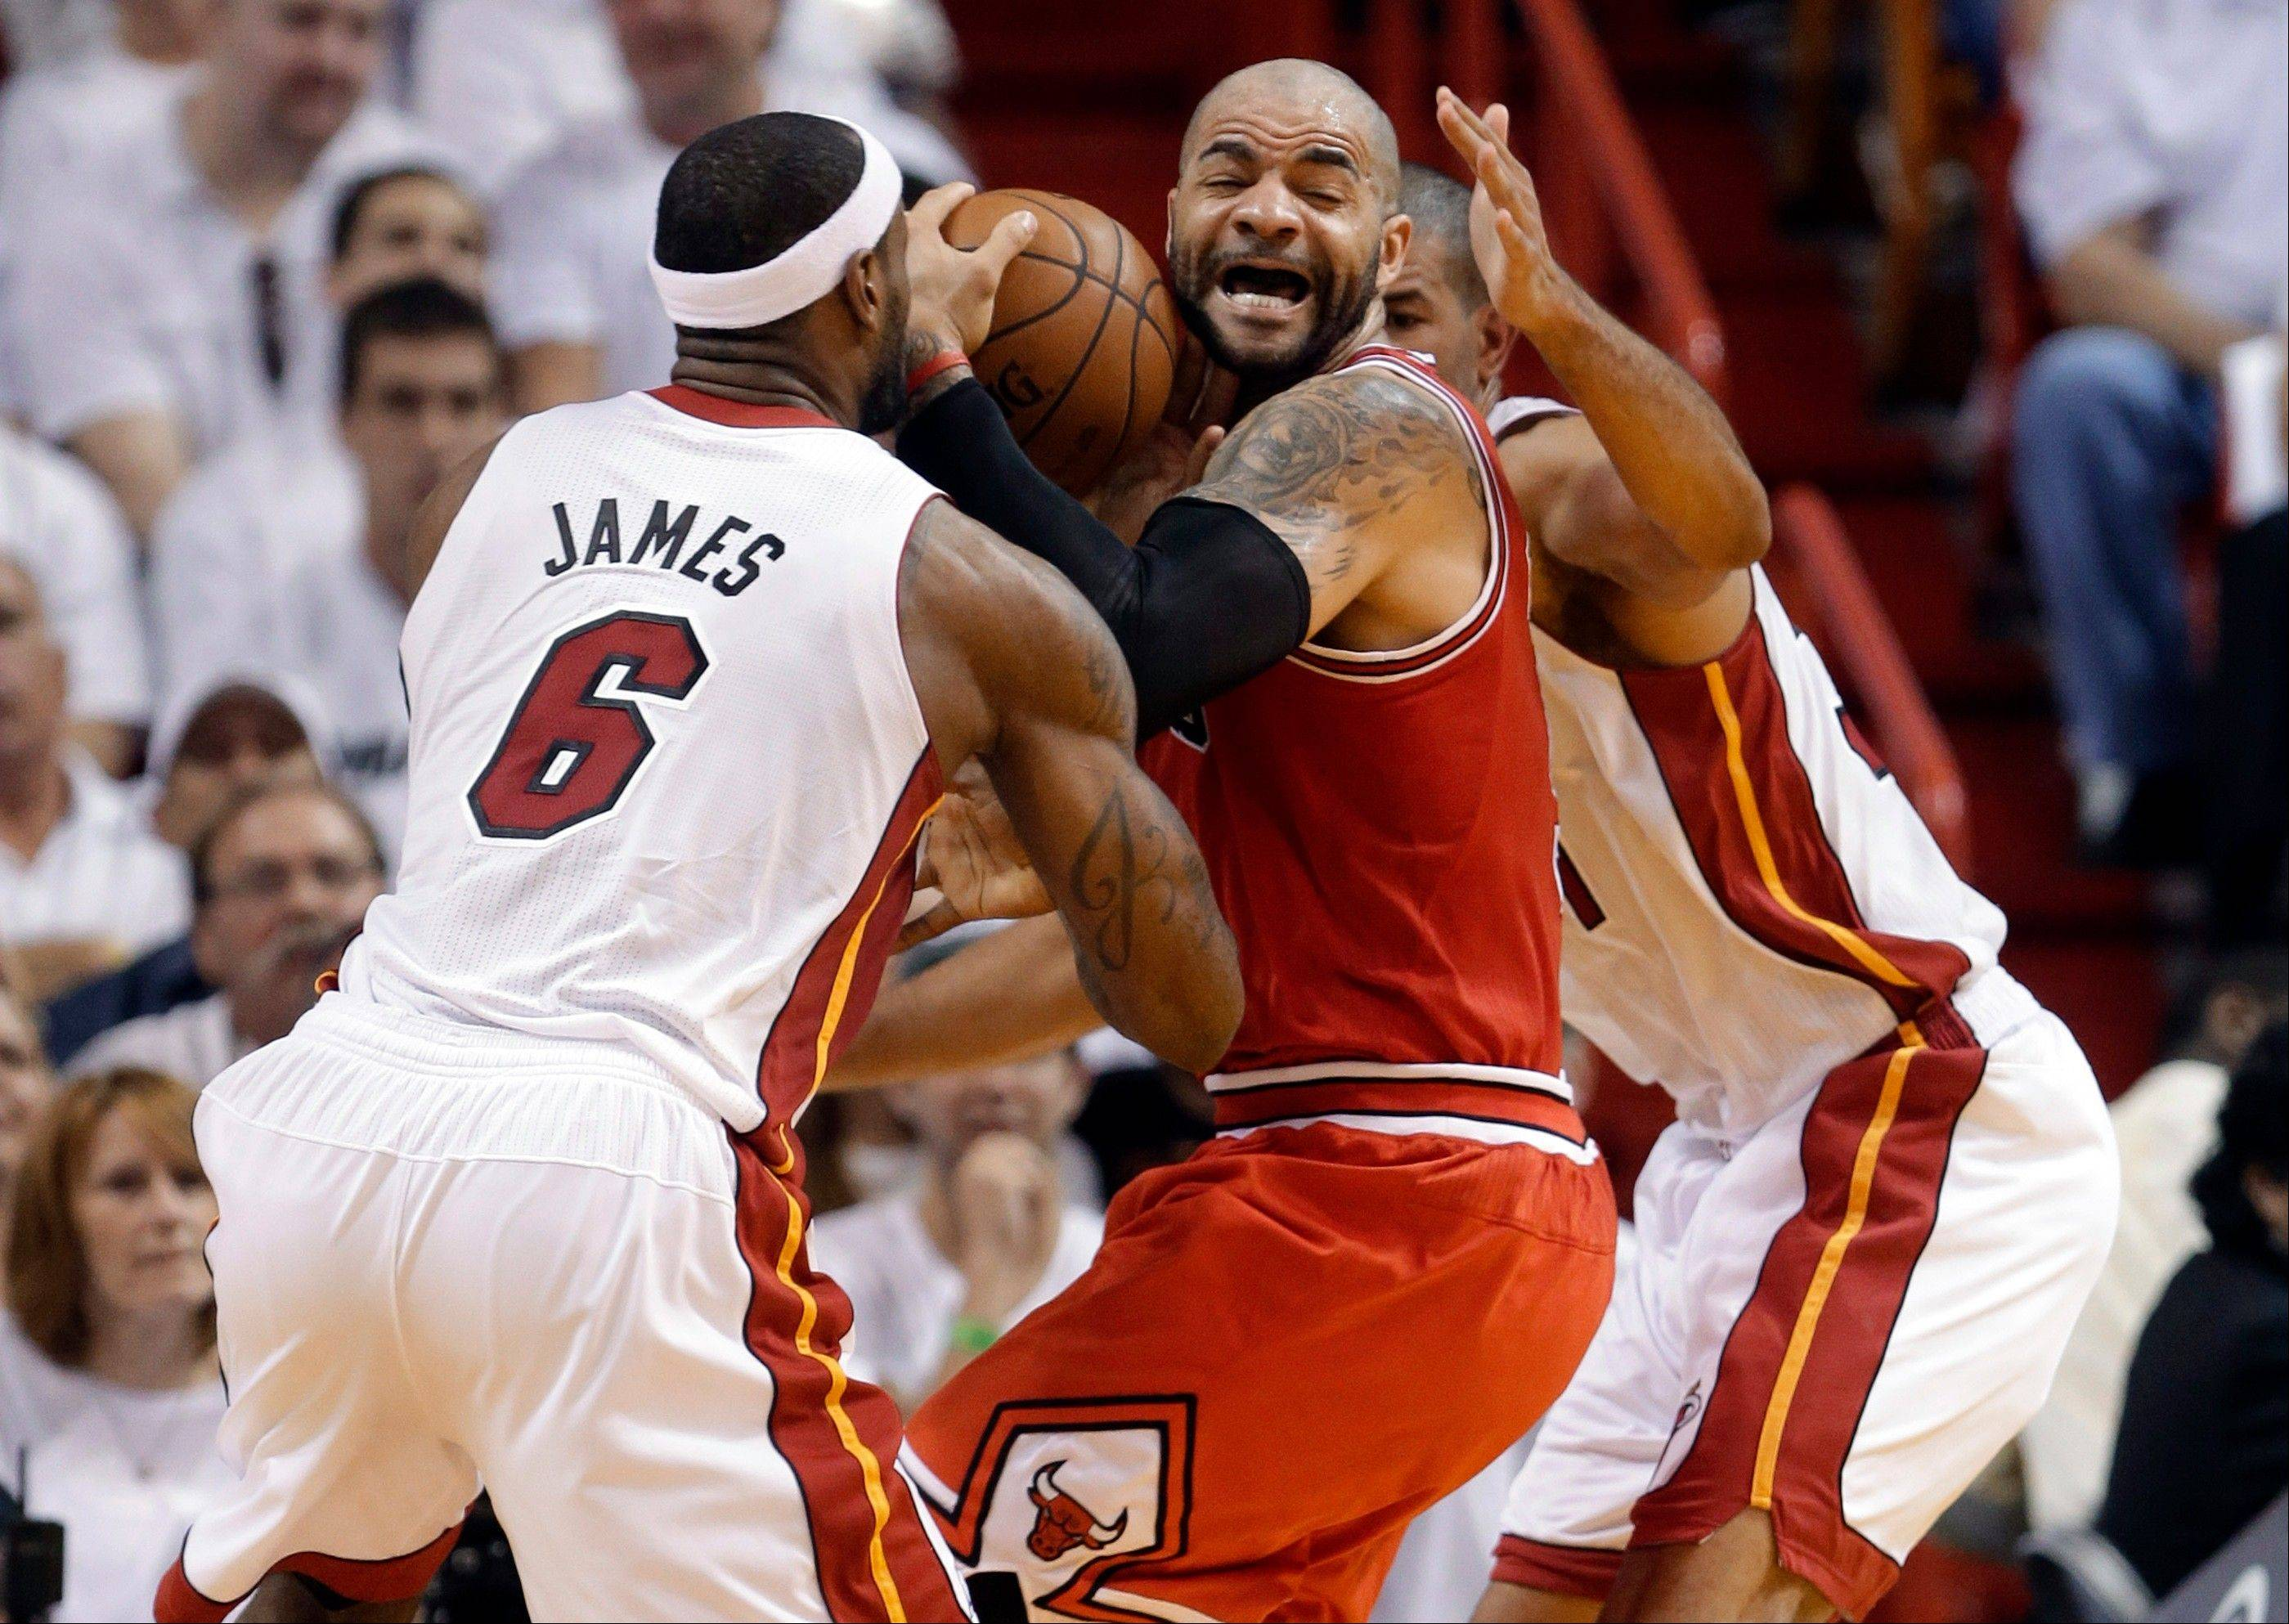 Chicago Bulls' Carlos Boozer works the ball between Miami Heat's LeBron James (6) and Shane Battier, right, Wednesday night in Miami. The Bulls lost to the Heat 94-91.